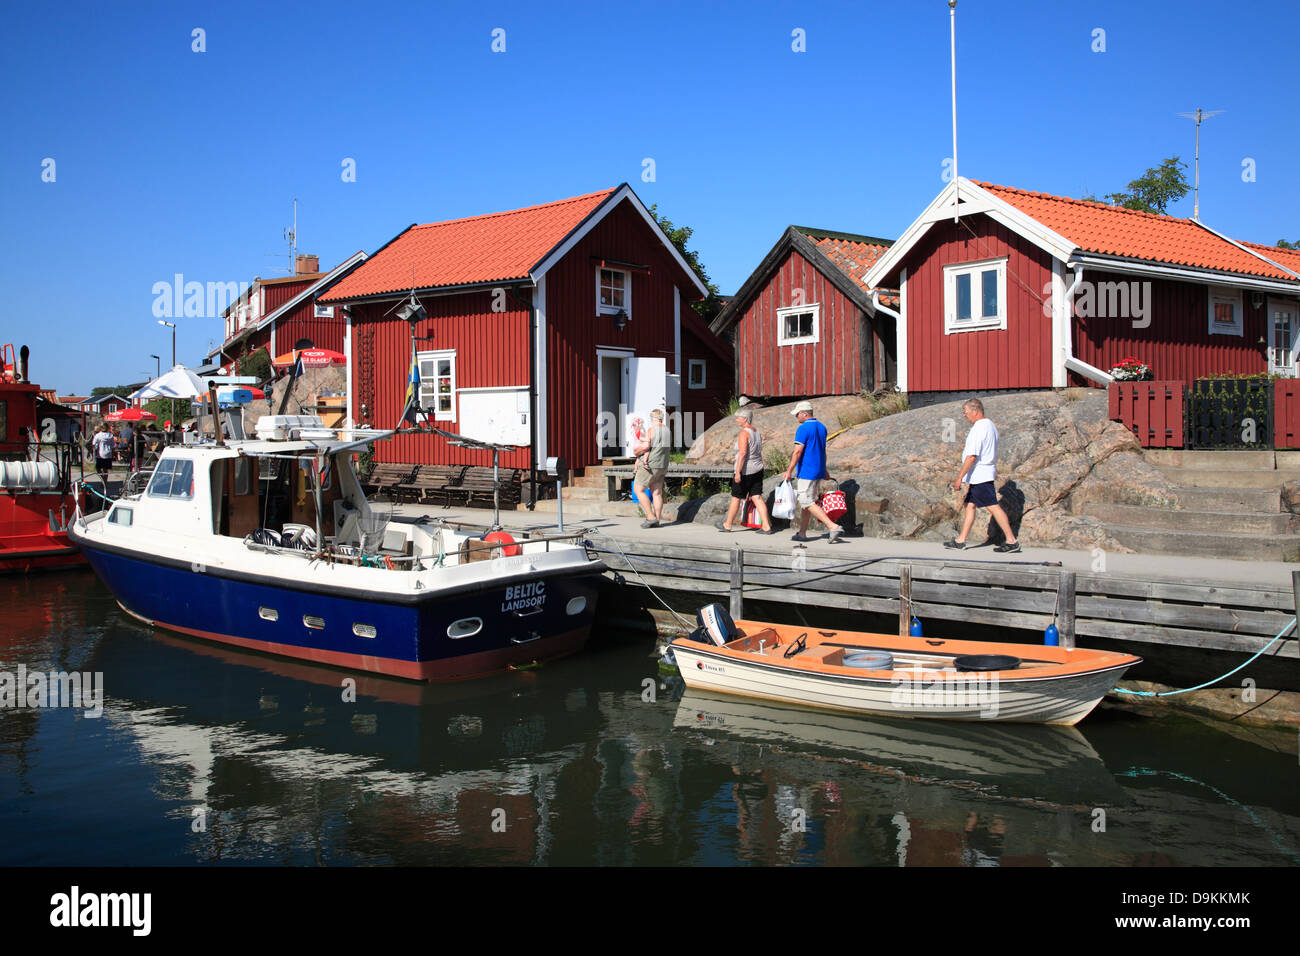 Harbor of Landsort Island (Oeja), Stockholm Archipelago, baltic sea coast, Sweden, Scandinavia - Stock Image